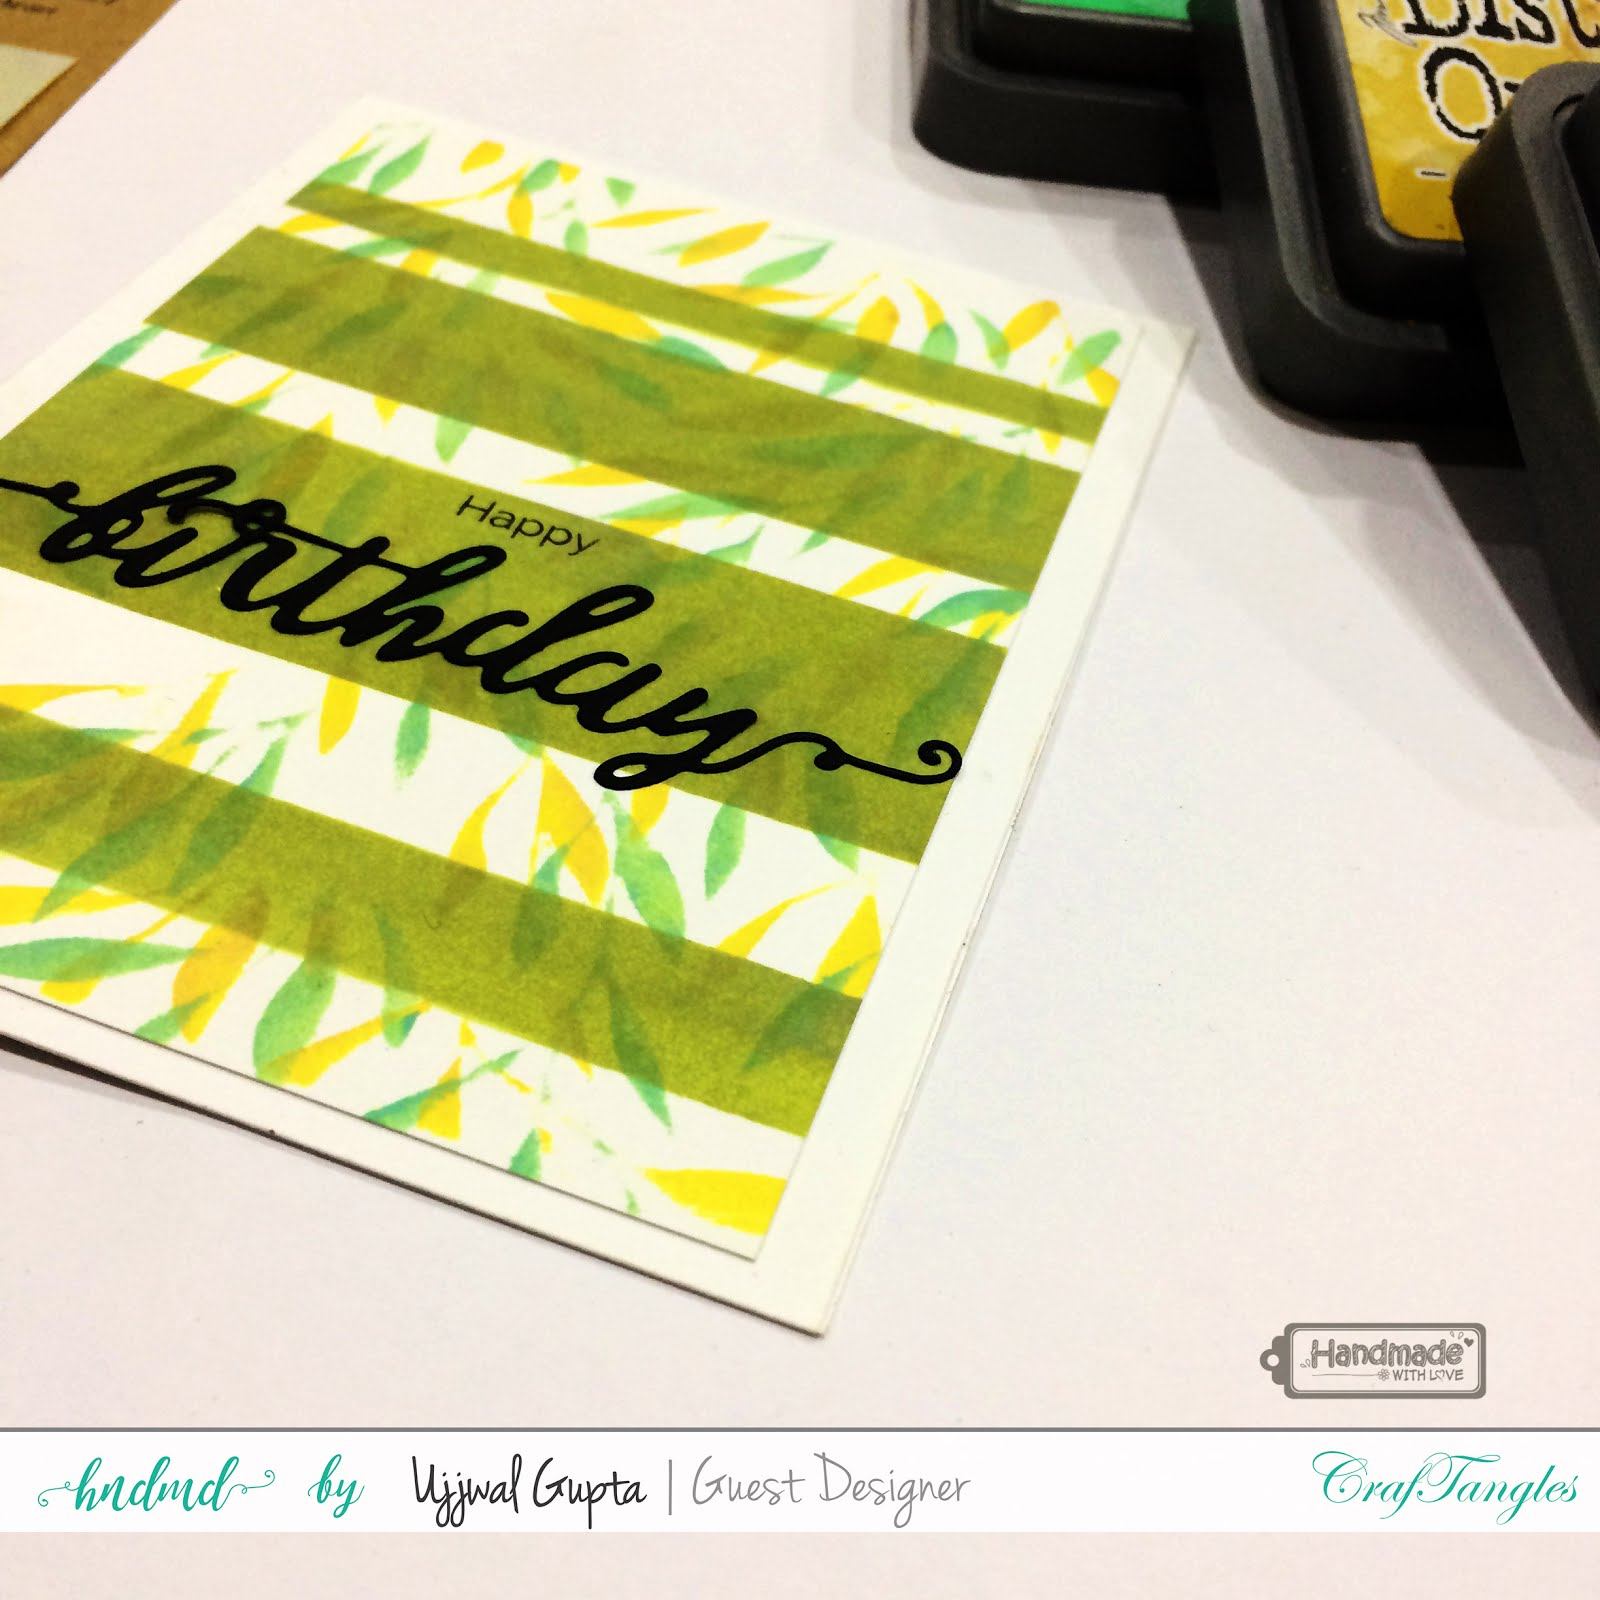 5 Cards using CrafTangles stamps and stencils 4